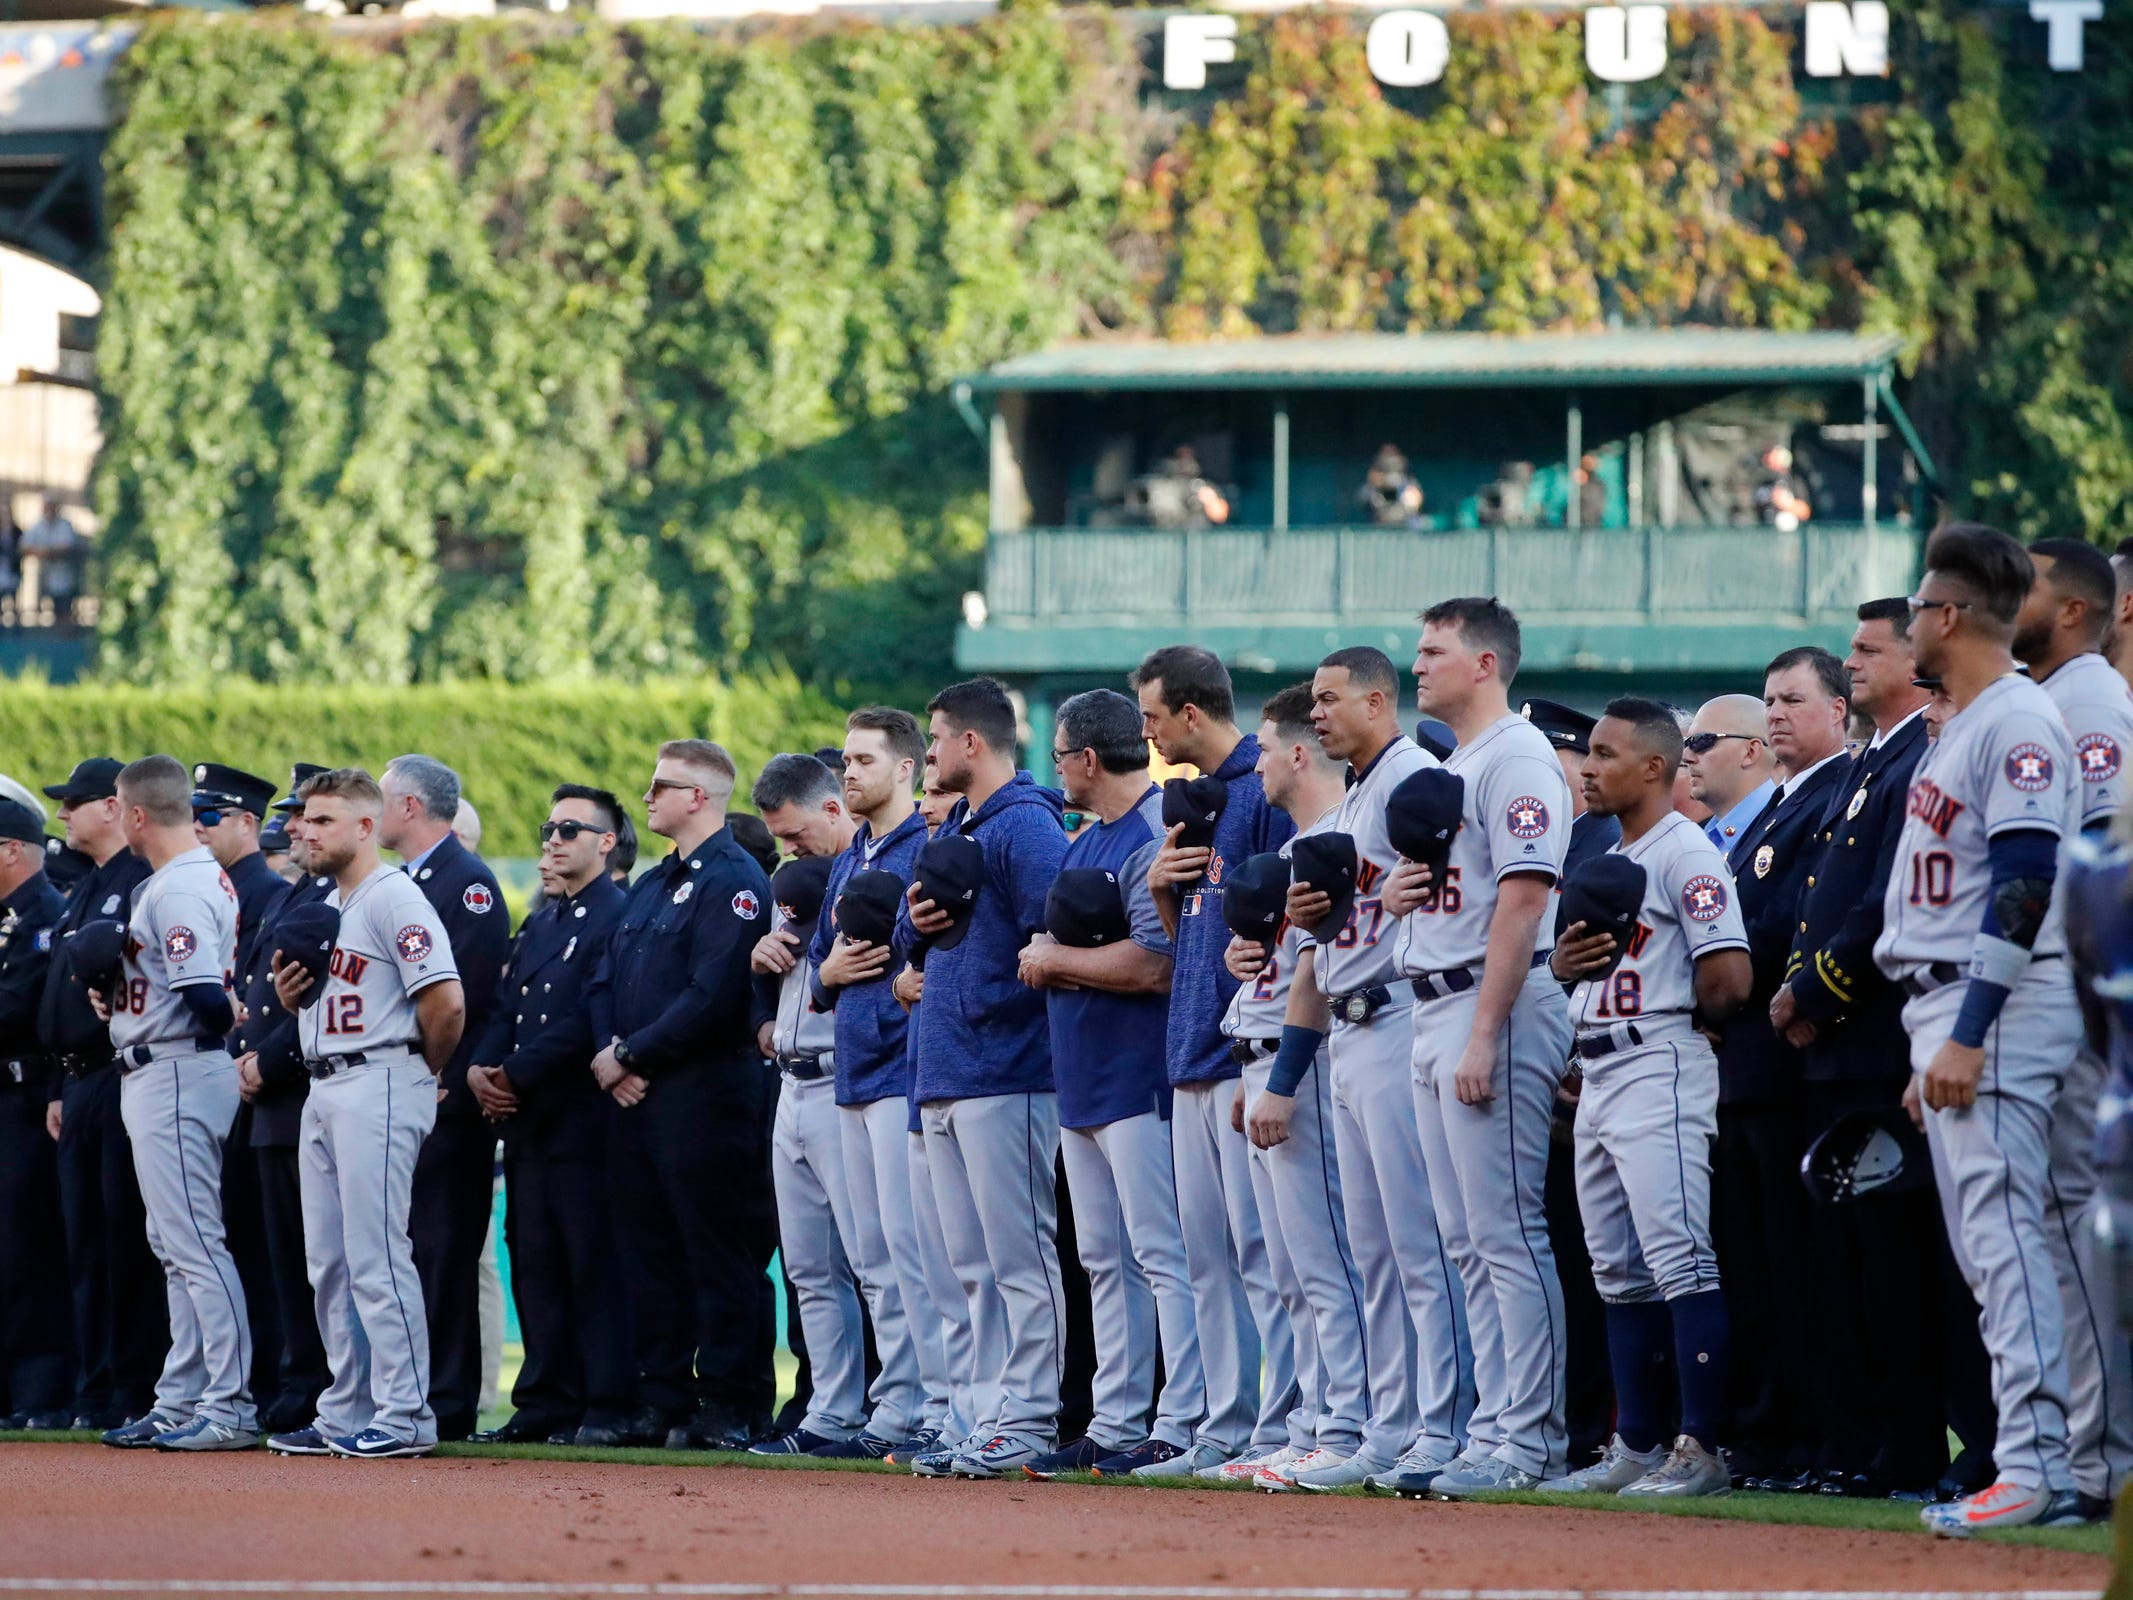 Houston Astros players line the field with first responders during the national anthem prior to the game against the Detroit Tigers at Comerica Park, Tuesday, Sept. 11, 2018.